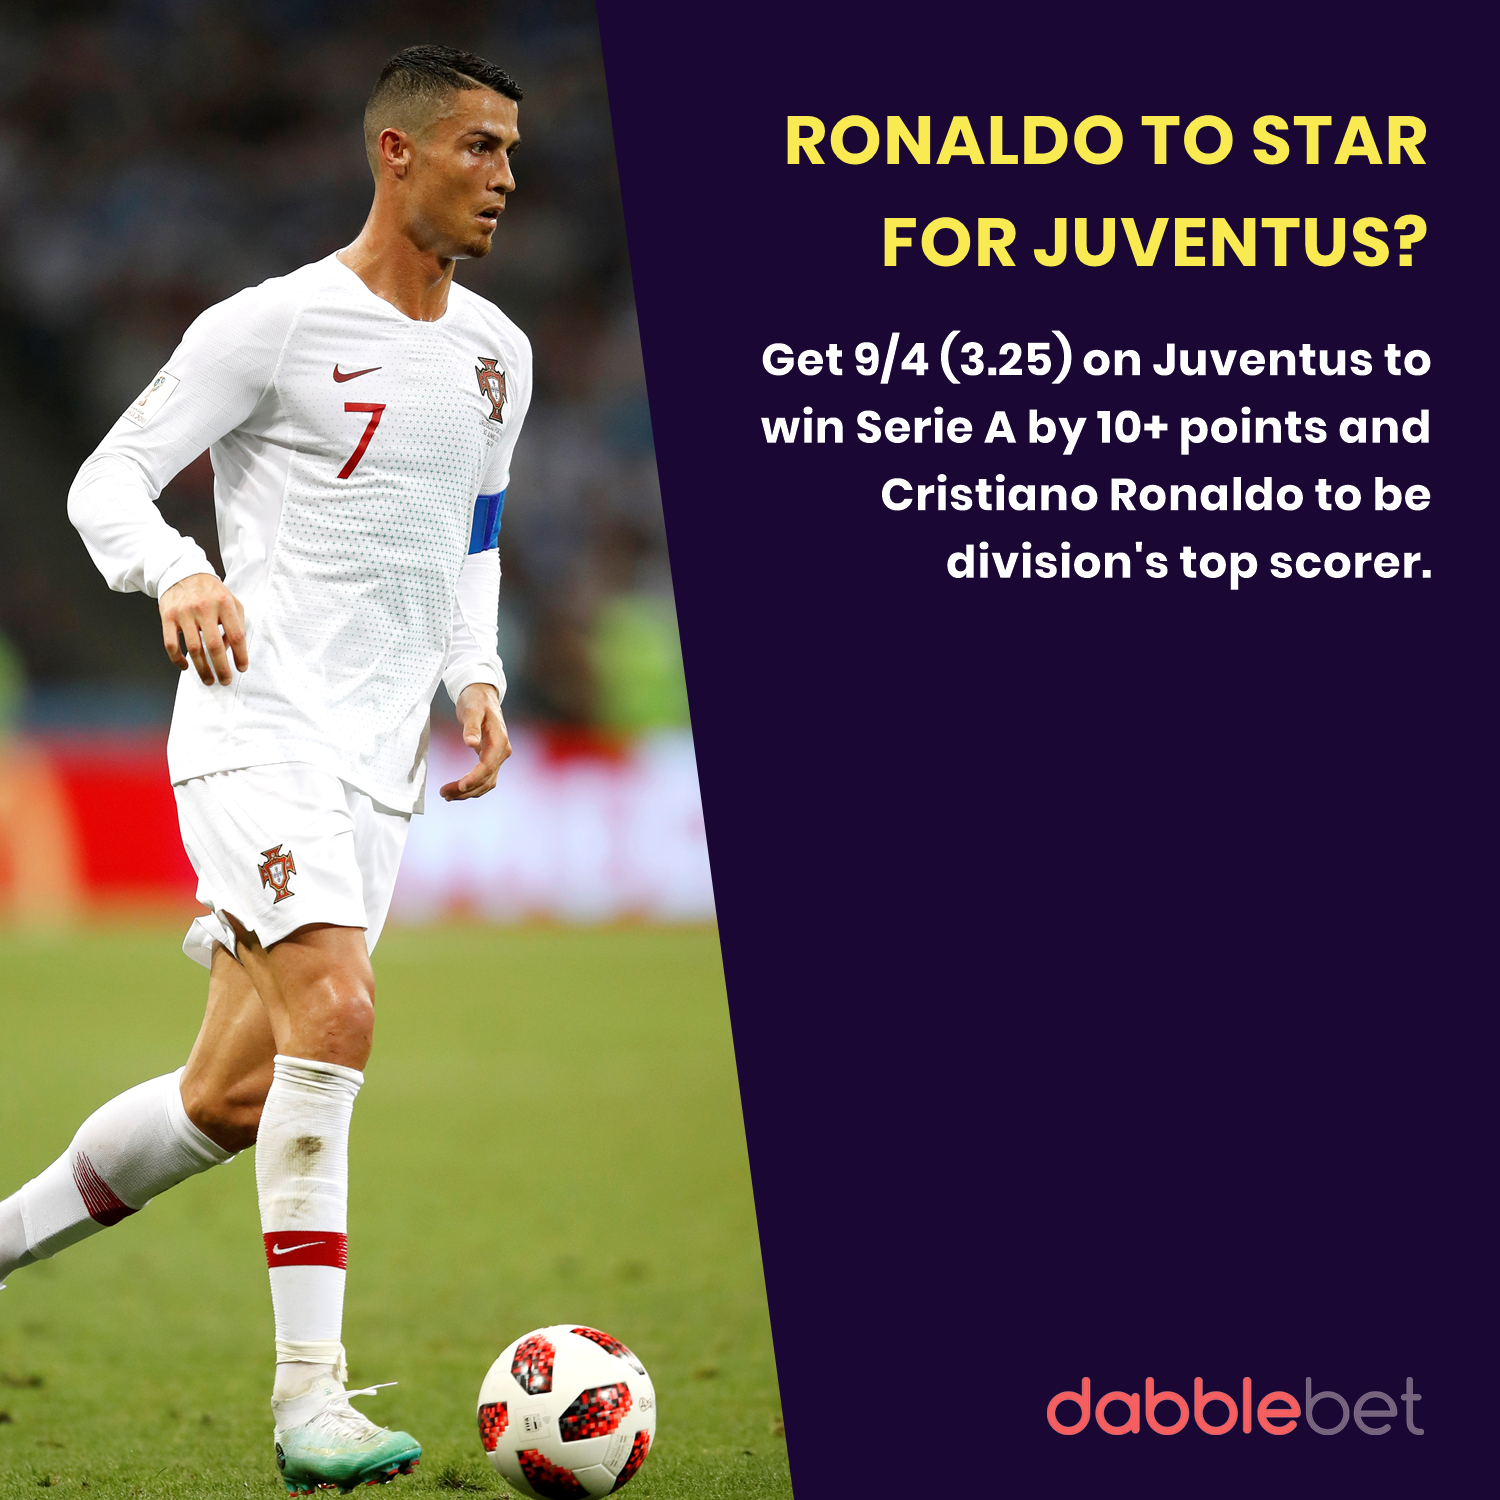 dabblebet enhanced odds Ronaldo and Juventus Serie A